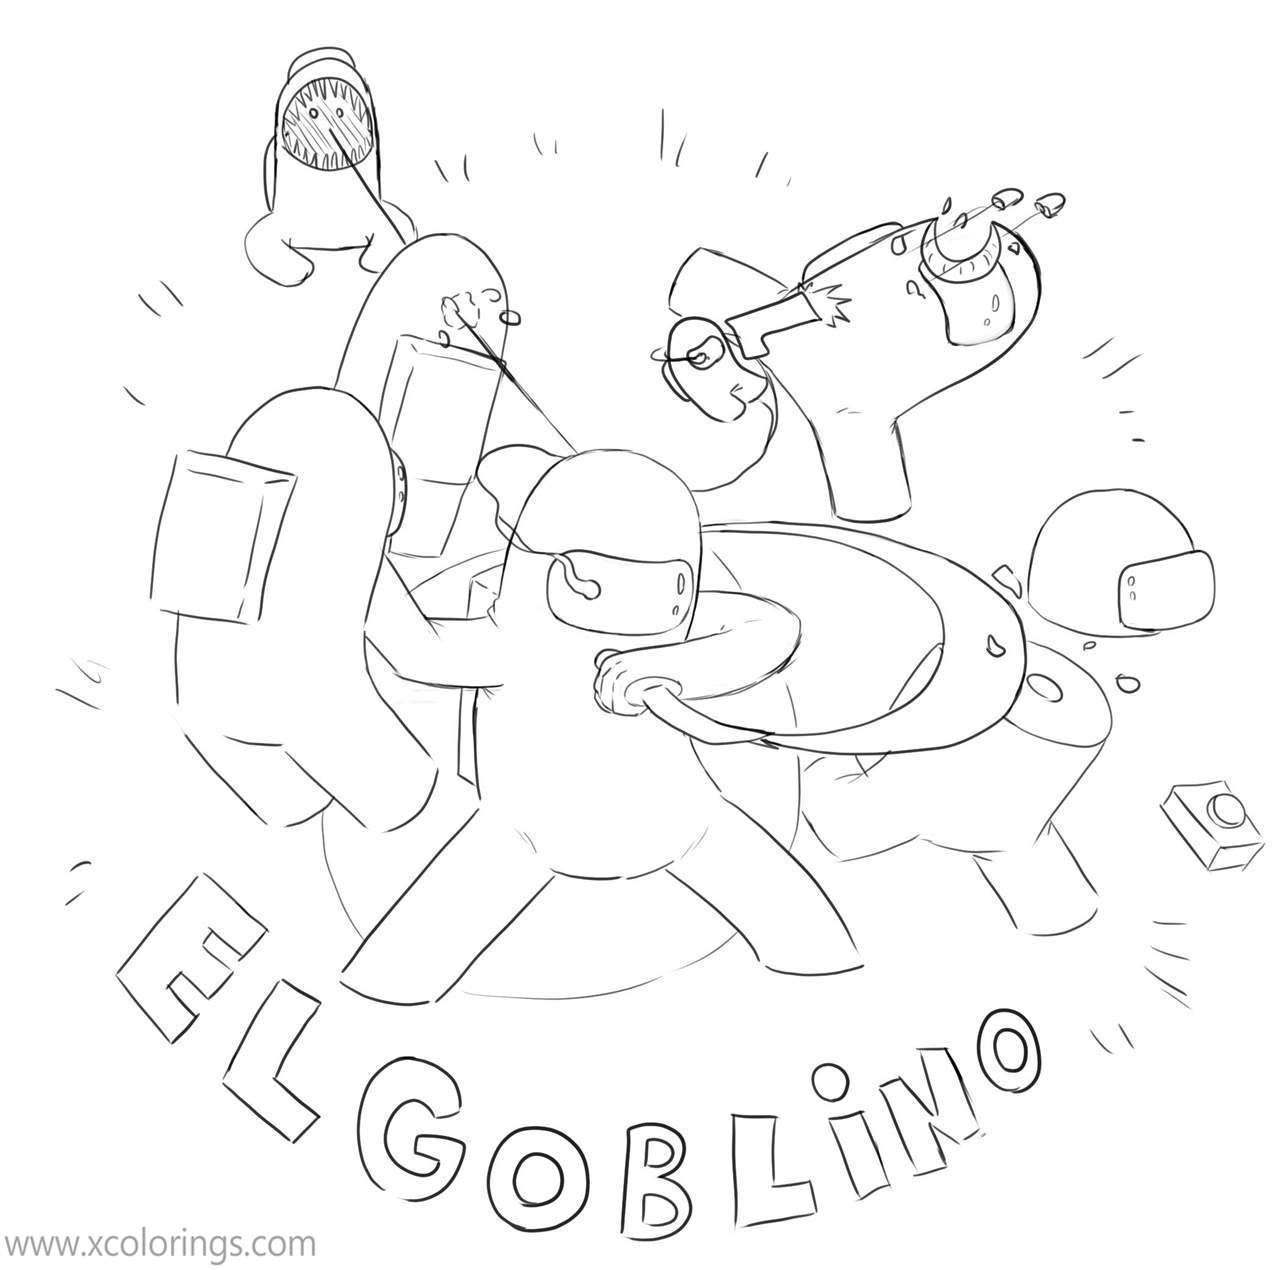 Among Us Coloring Pages Spaceship Astronauts Xcolorings Com Coloring Pages Fan Art Color